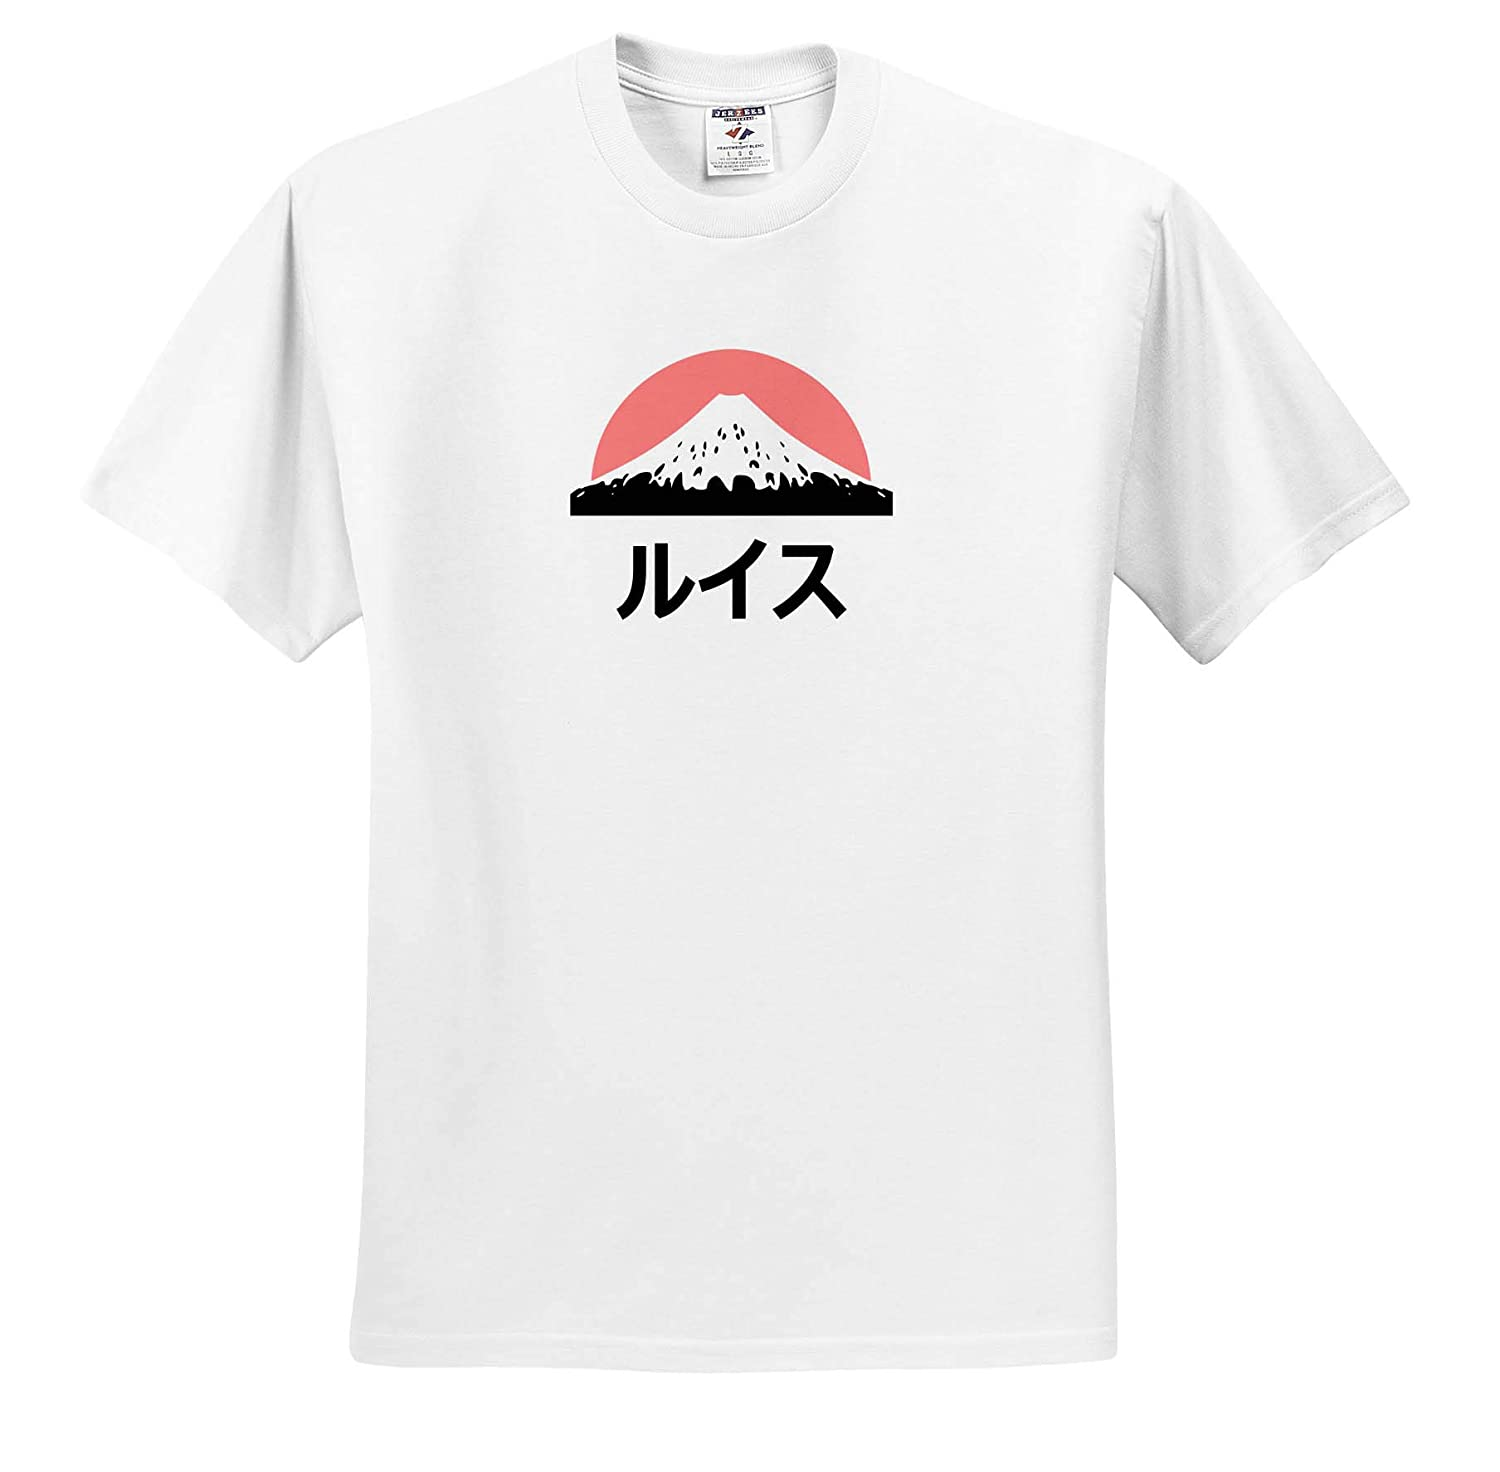 Adult T-Shirt XL 3dRose InspirationzStore Louis Lewis or Luis in Japanese Letters Name in Japanese ts/_320570